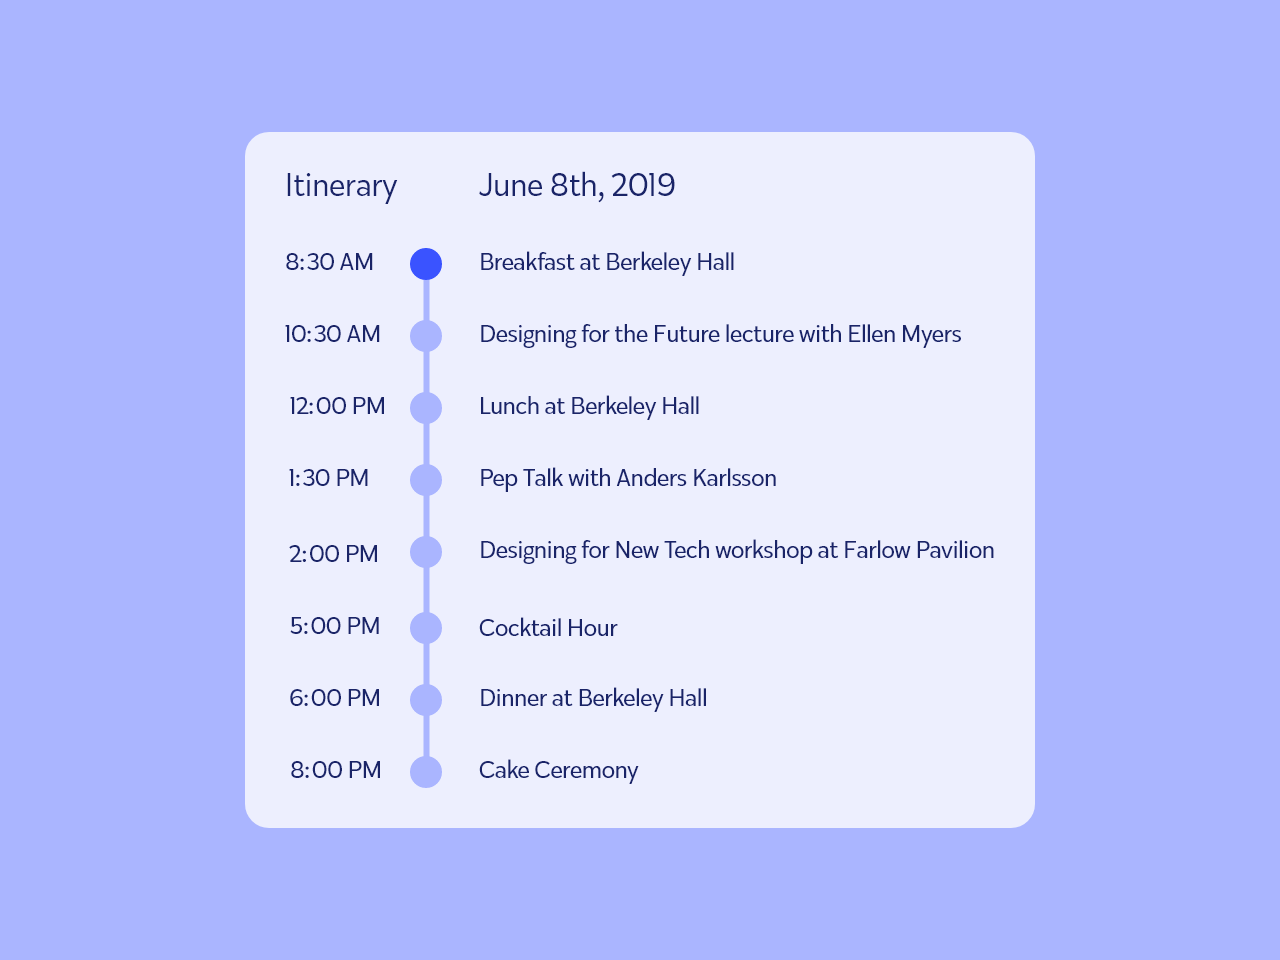 Daily UI #079 - Itinerary seminar 79 079 design convention design dailyui xd adobe xd plan plans planning planner itinerary